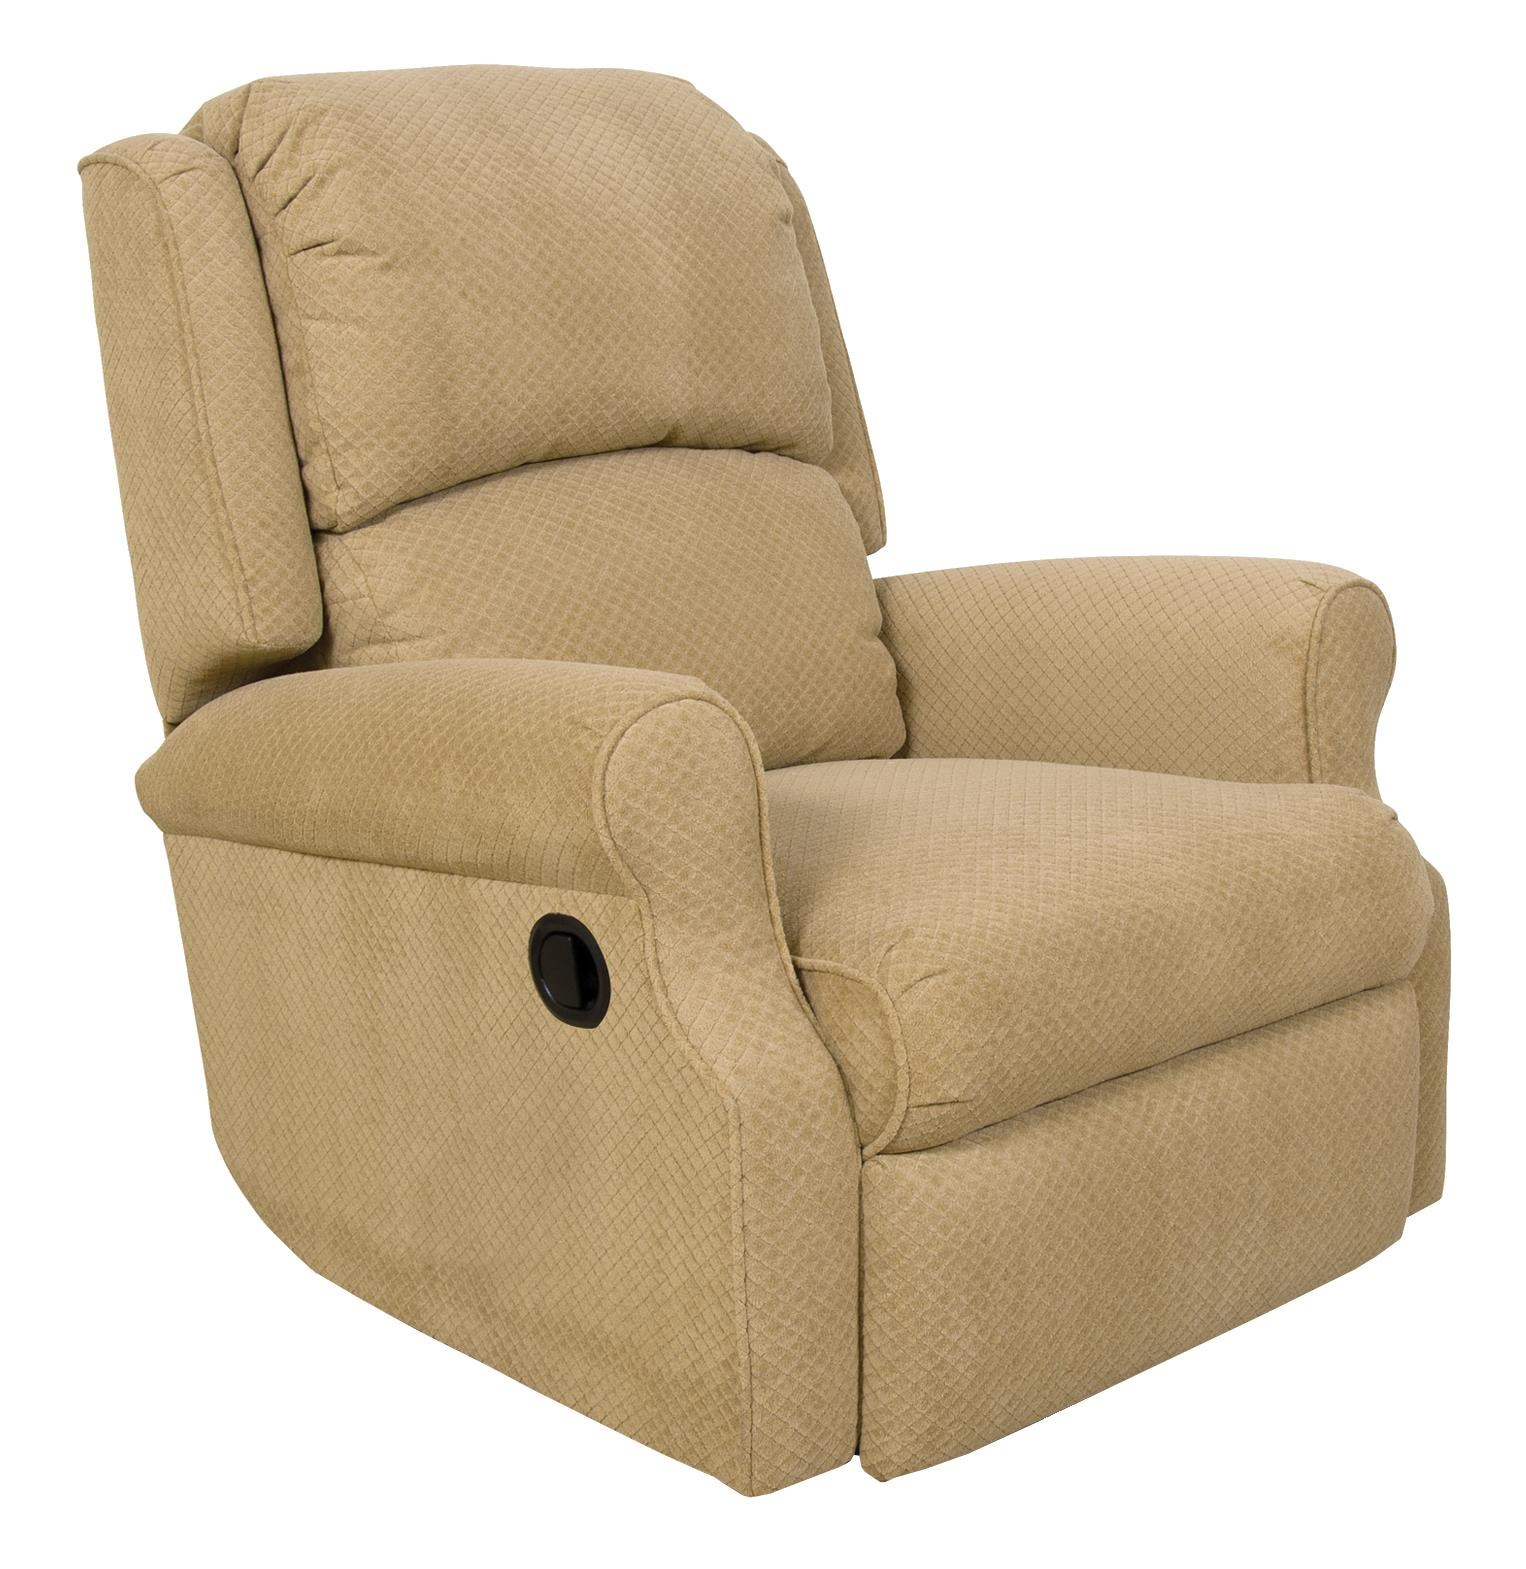 Recliner Jordan Furniture England Marybeth Comfortable Rocker Recliner With Power For Living